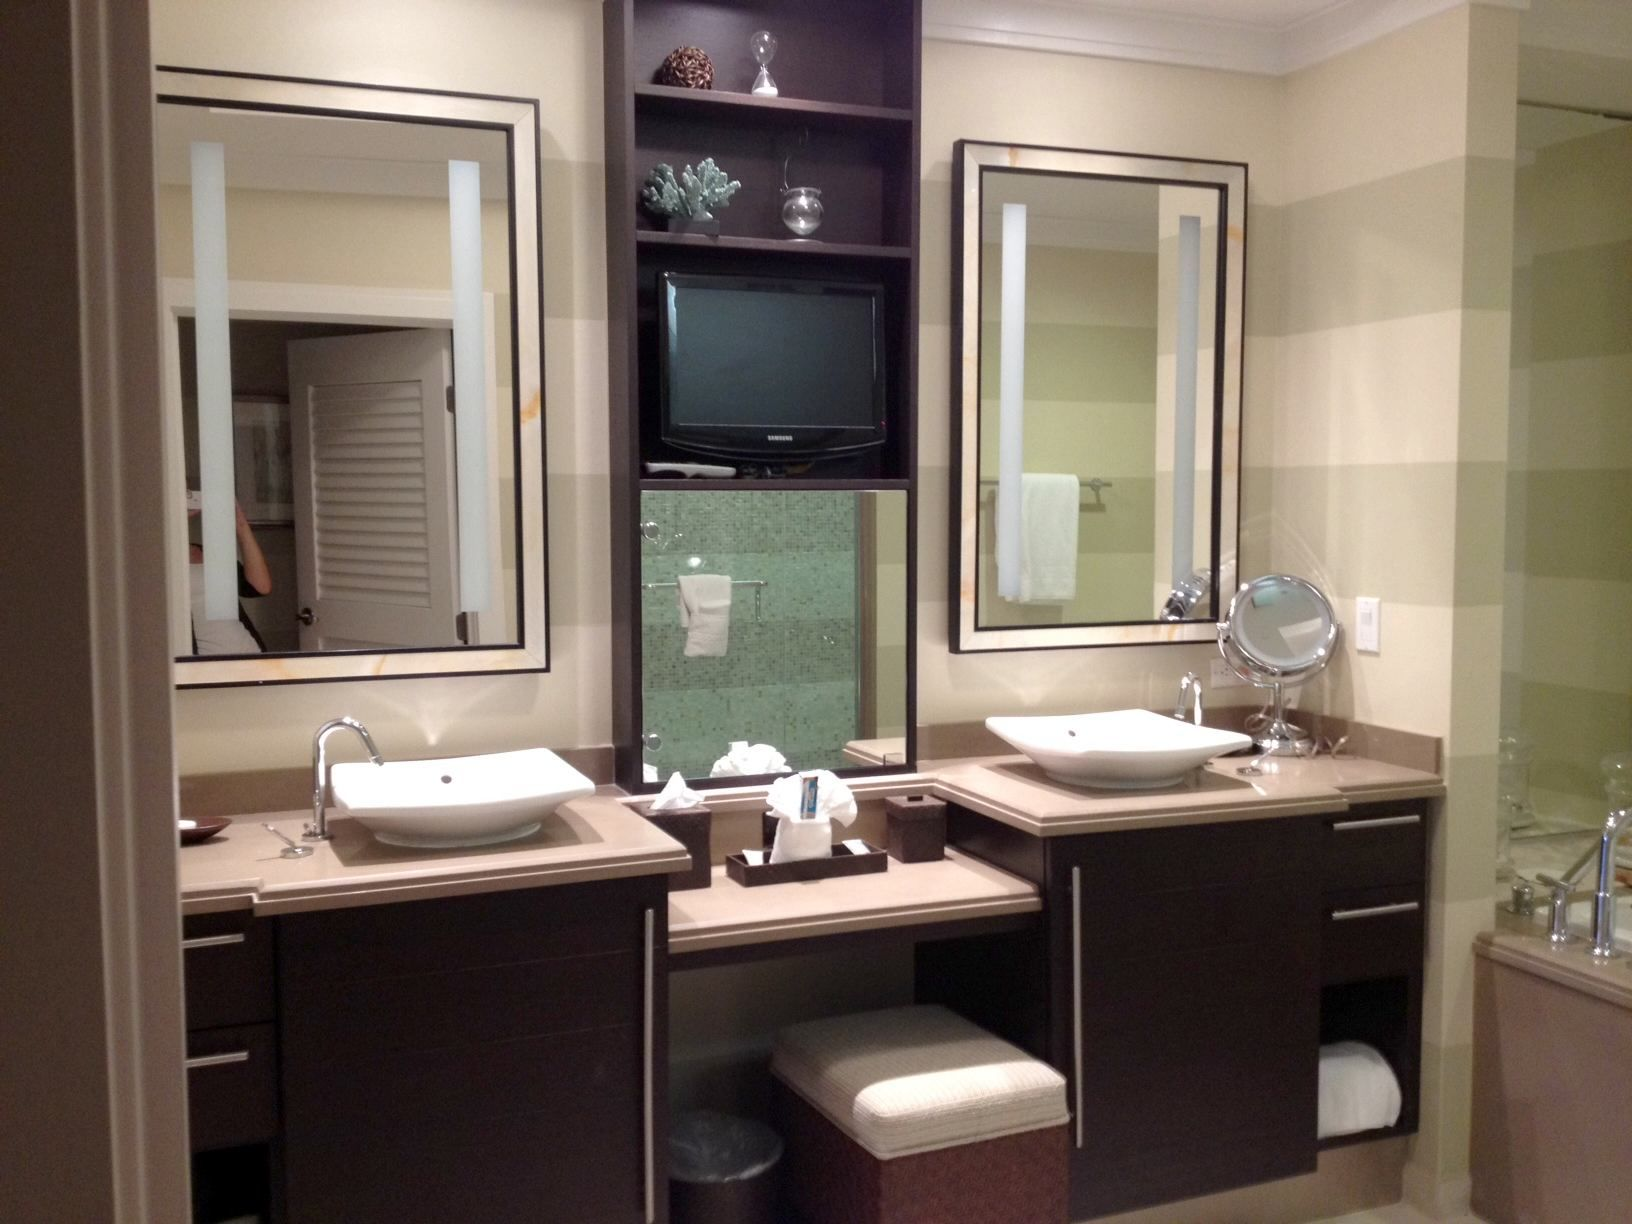 Double bathroom vanity with makeup area - Fabulous Double White Sink Also Side Storage Makeup Vanity With Two Square Wall Mounted Mirror And